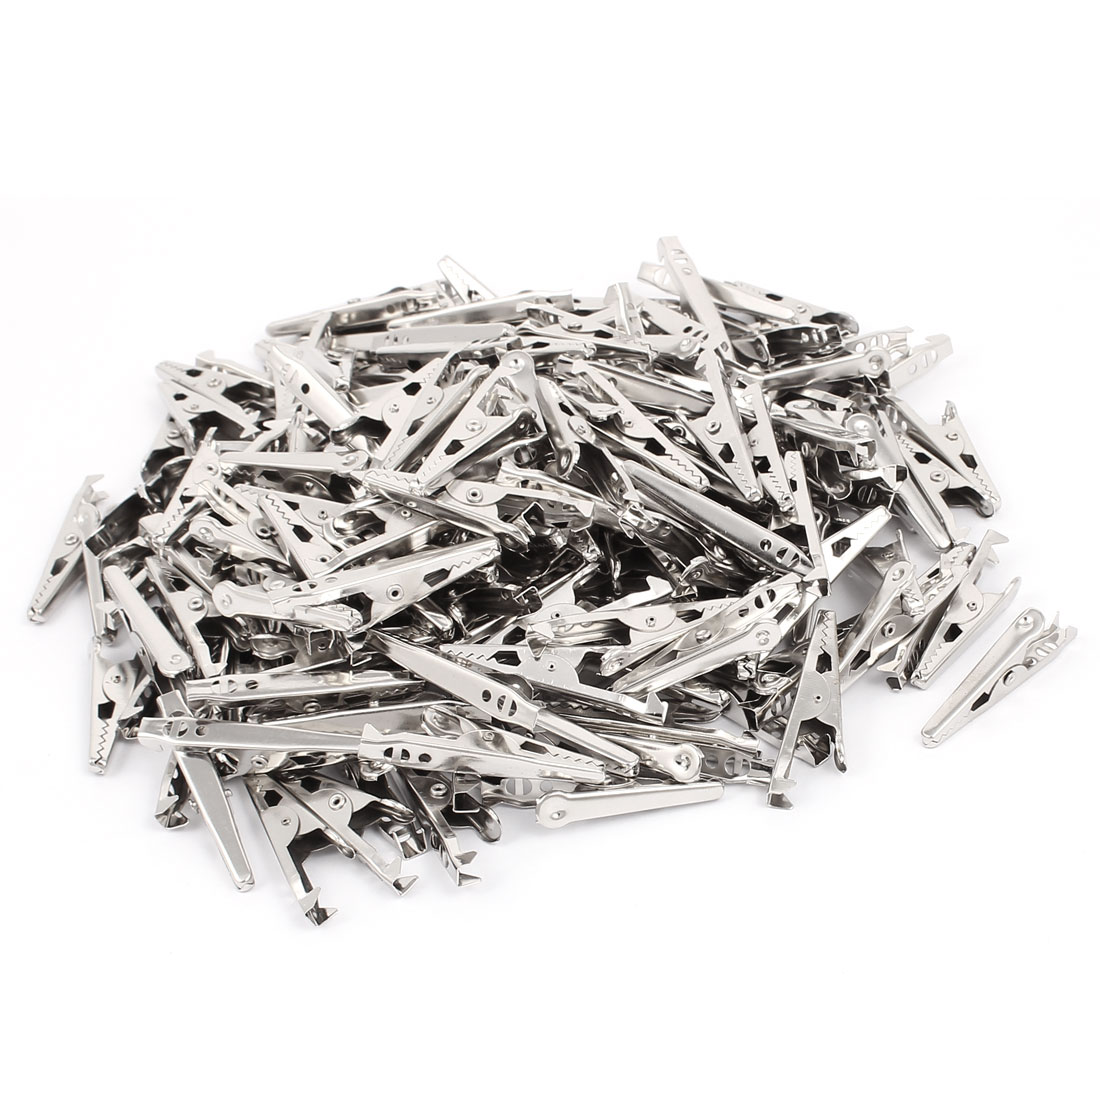 Metal Hooked Fixation Alligator Crocodile Clip Clamp Silver Tone 180 Pcs